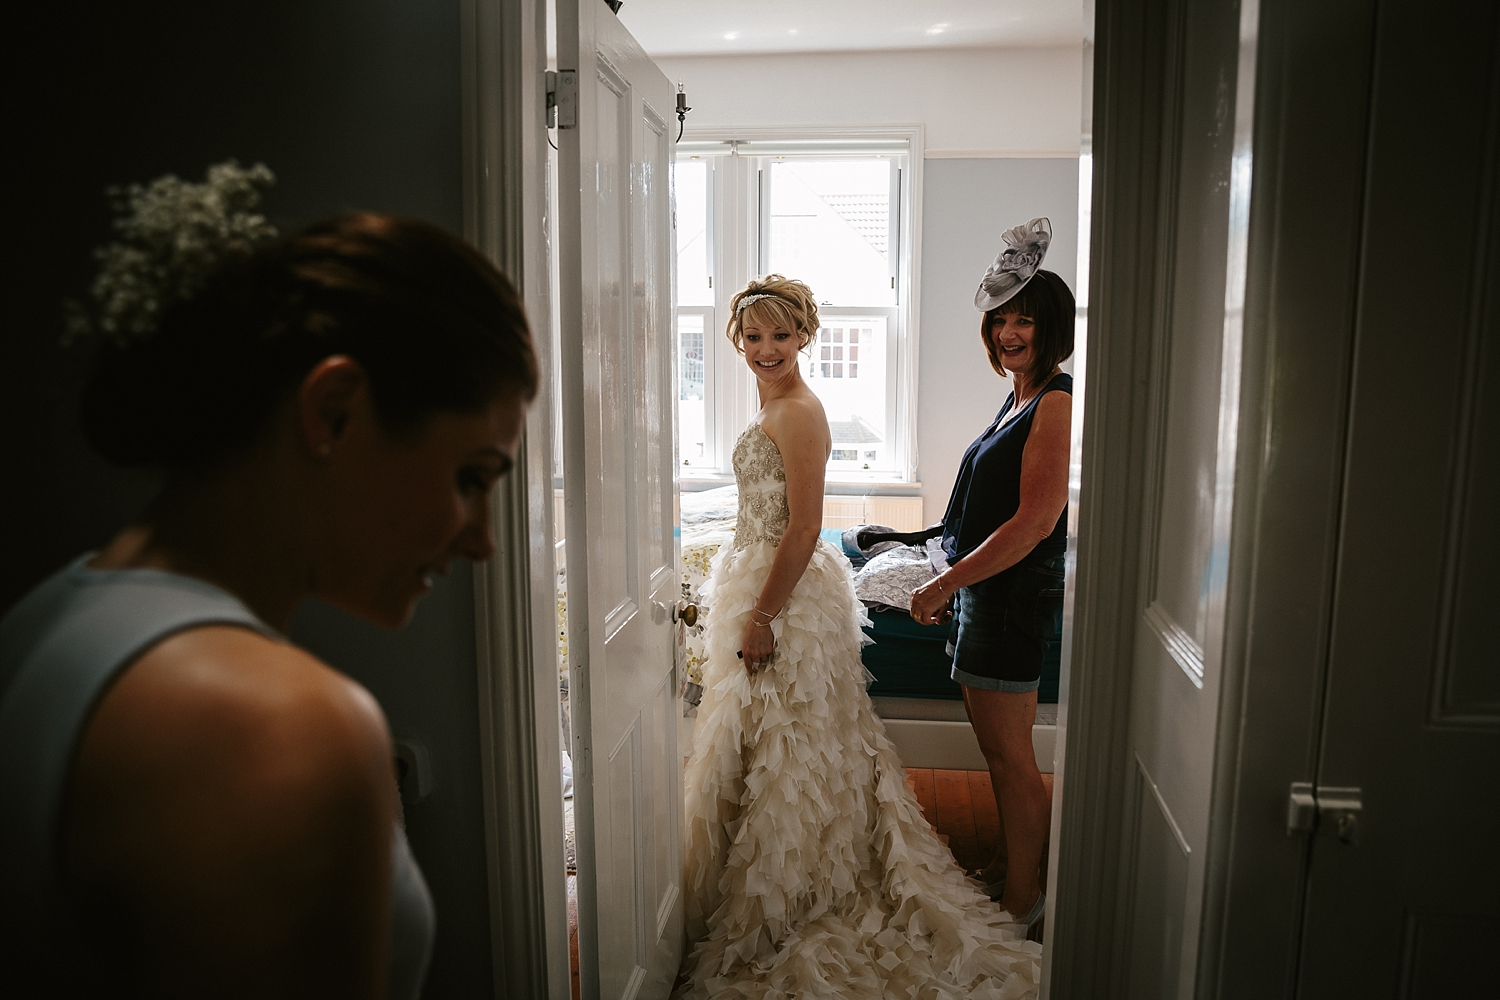 Natlie-Matthew-yorkshire-natural-relaxed-fun-documentary-reportage-candid-wedding-photography-photographer-Derby-Nottingham-Derbyshire-Nottinghamshire-Leicestershire-Lincolnshire-East-Midlands-26.jpg